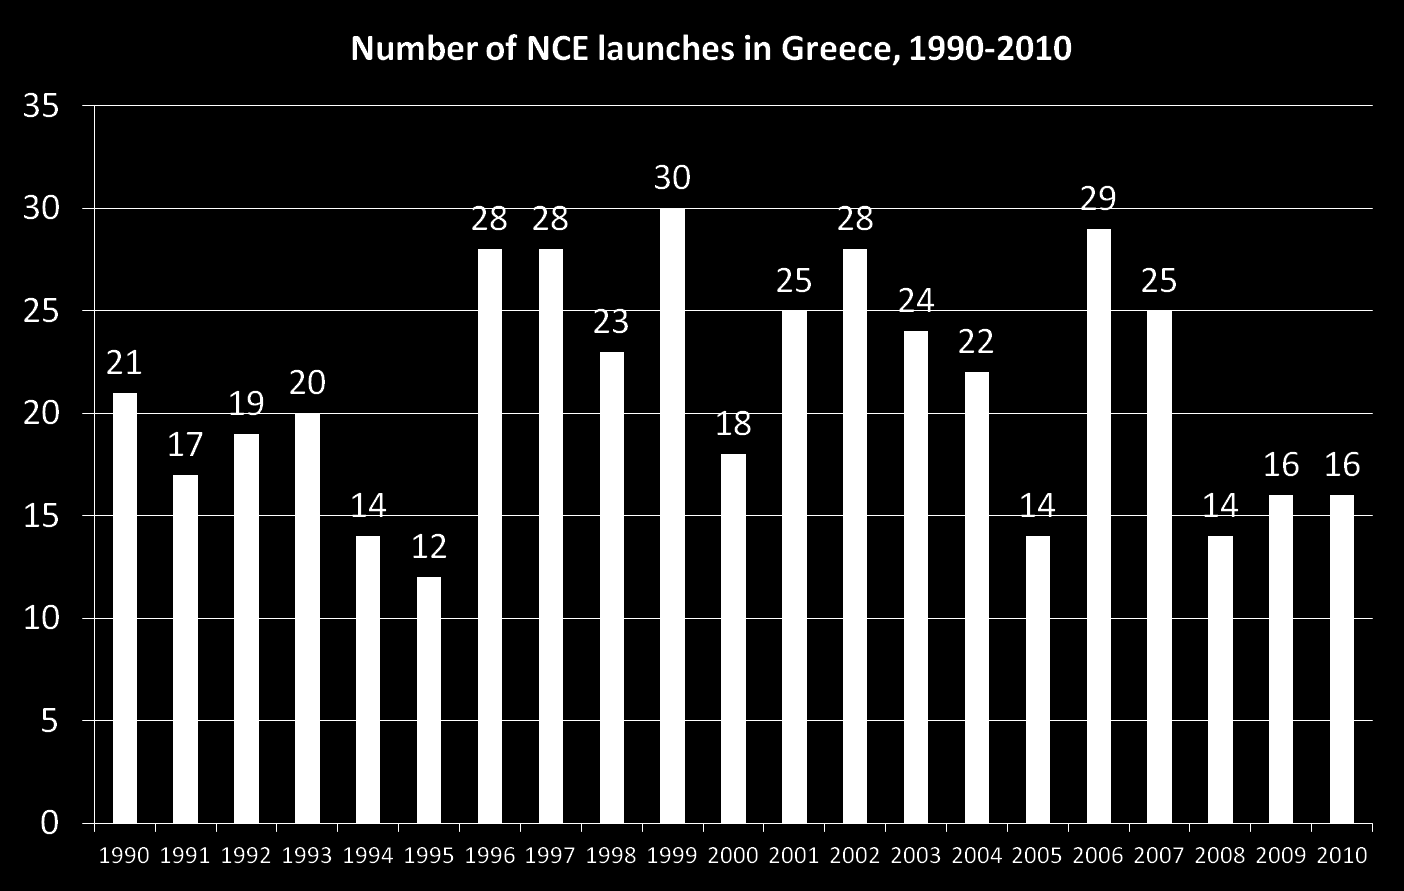 During the period 1990-2010, the average annual number of new chemical entities (drugs) launched in Greece was 21. Lichtenberg, F.R.